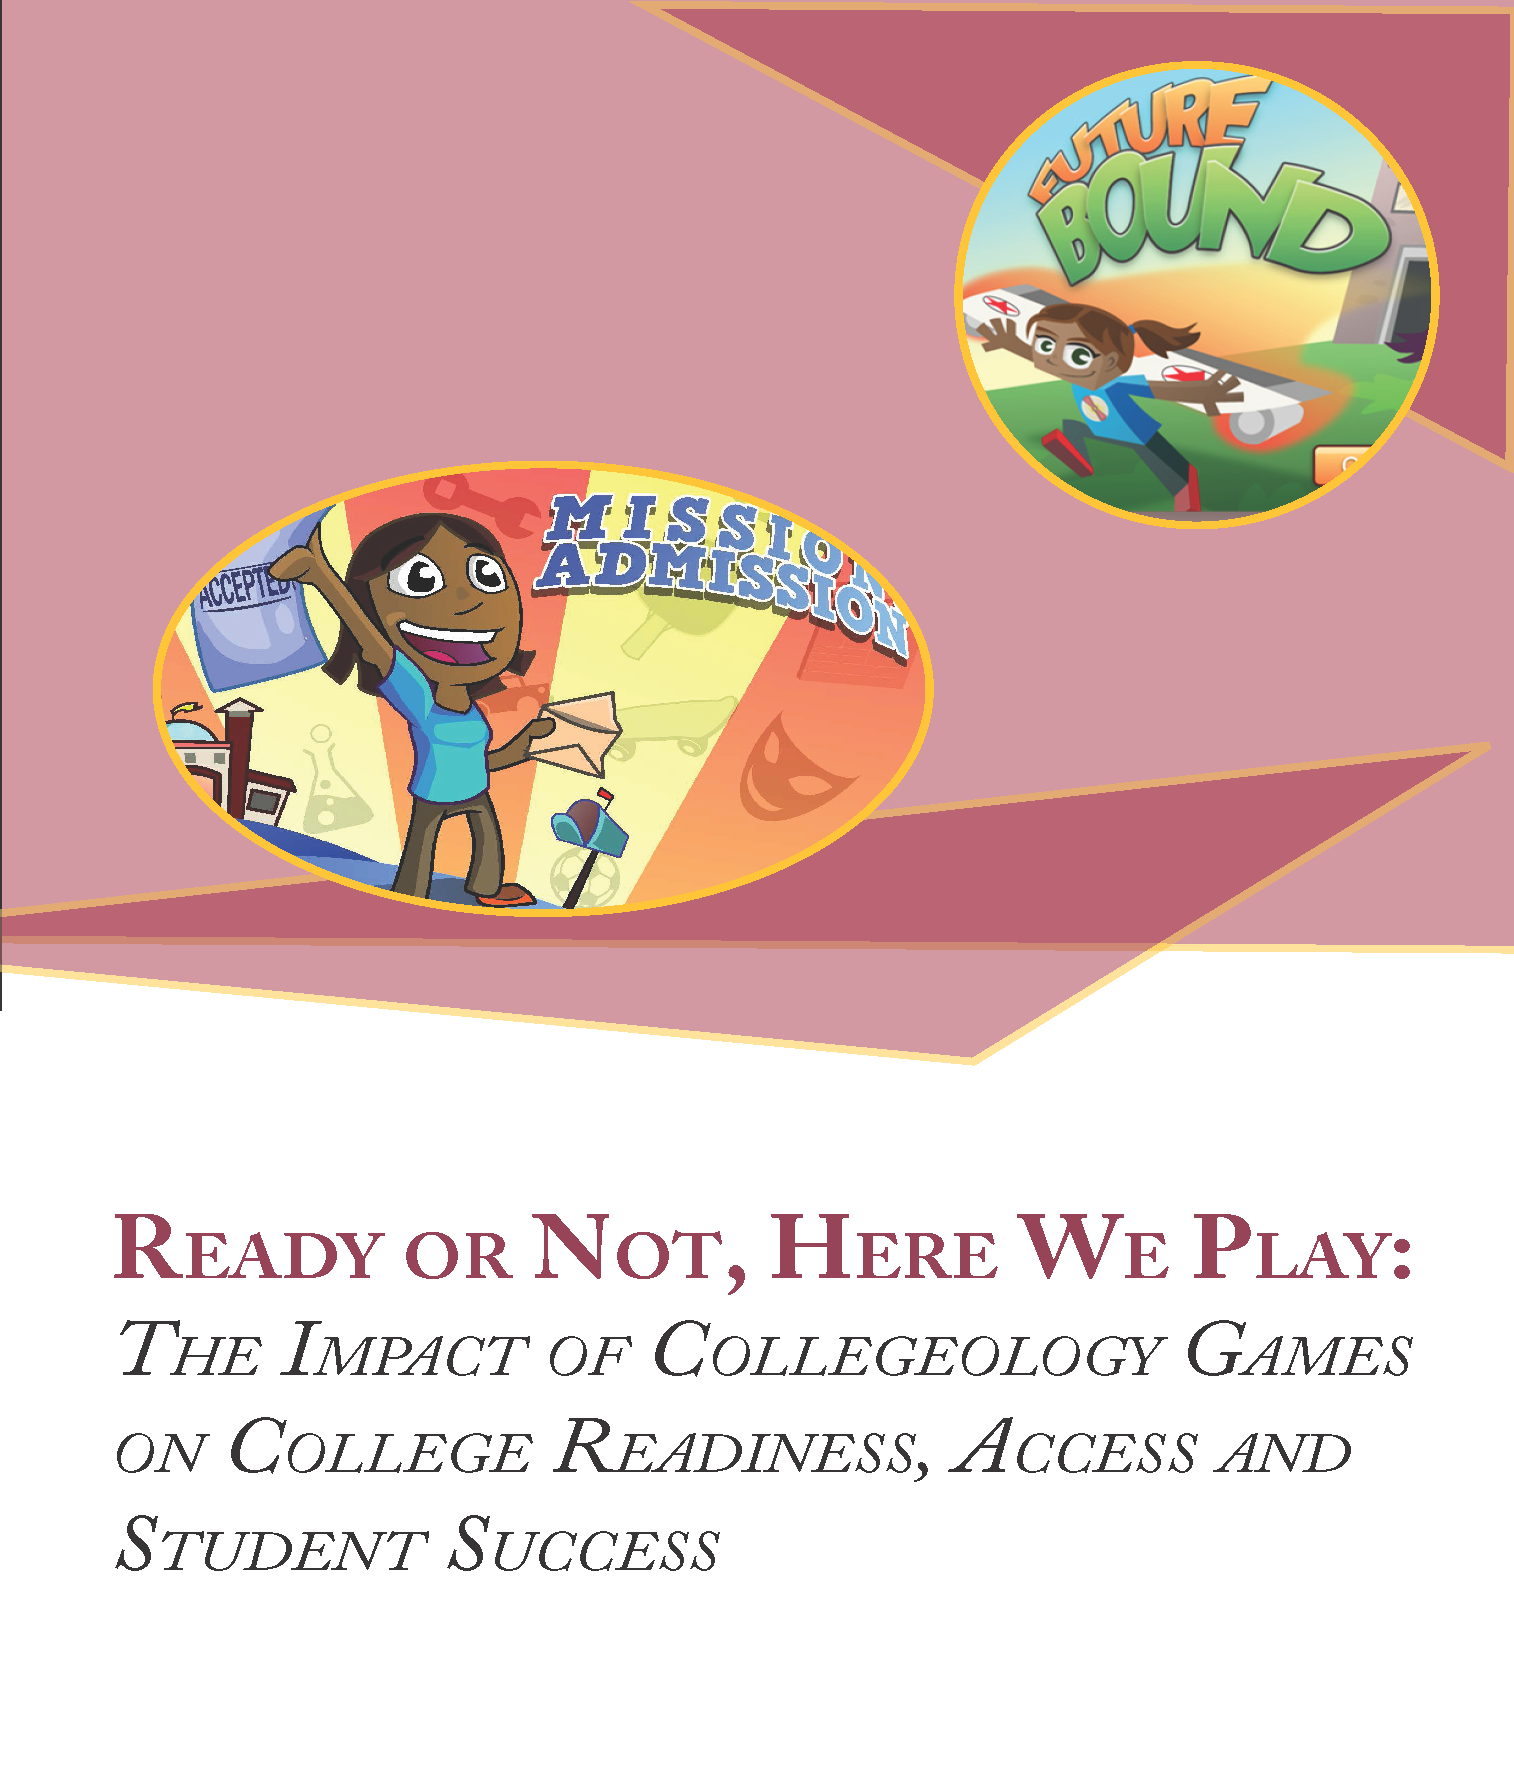 Ready Or Not, Here We Play: The Impact of Collegeology Games on College Readiness, Access and Student Success